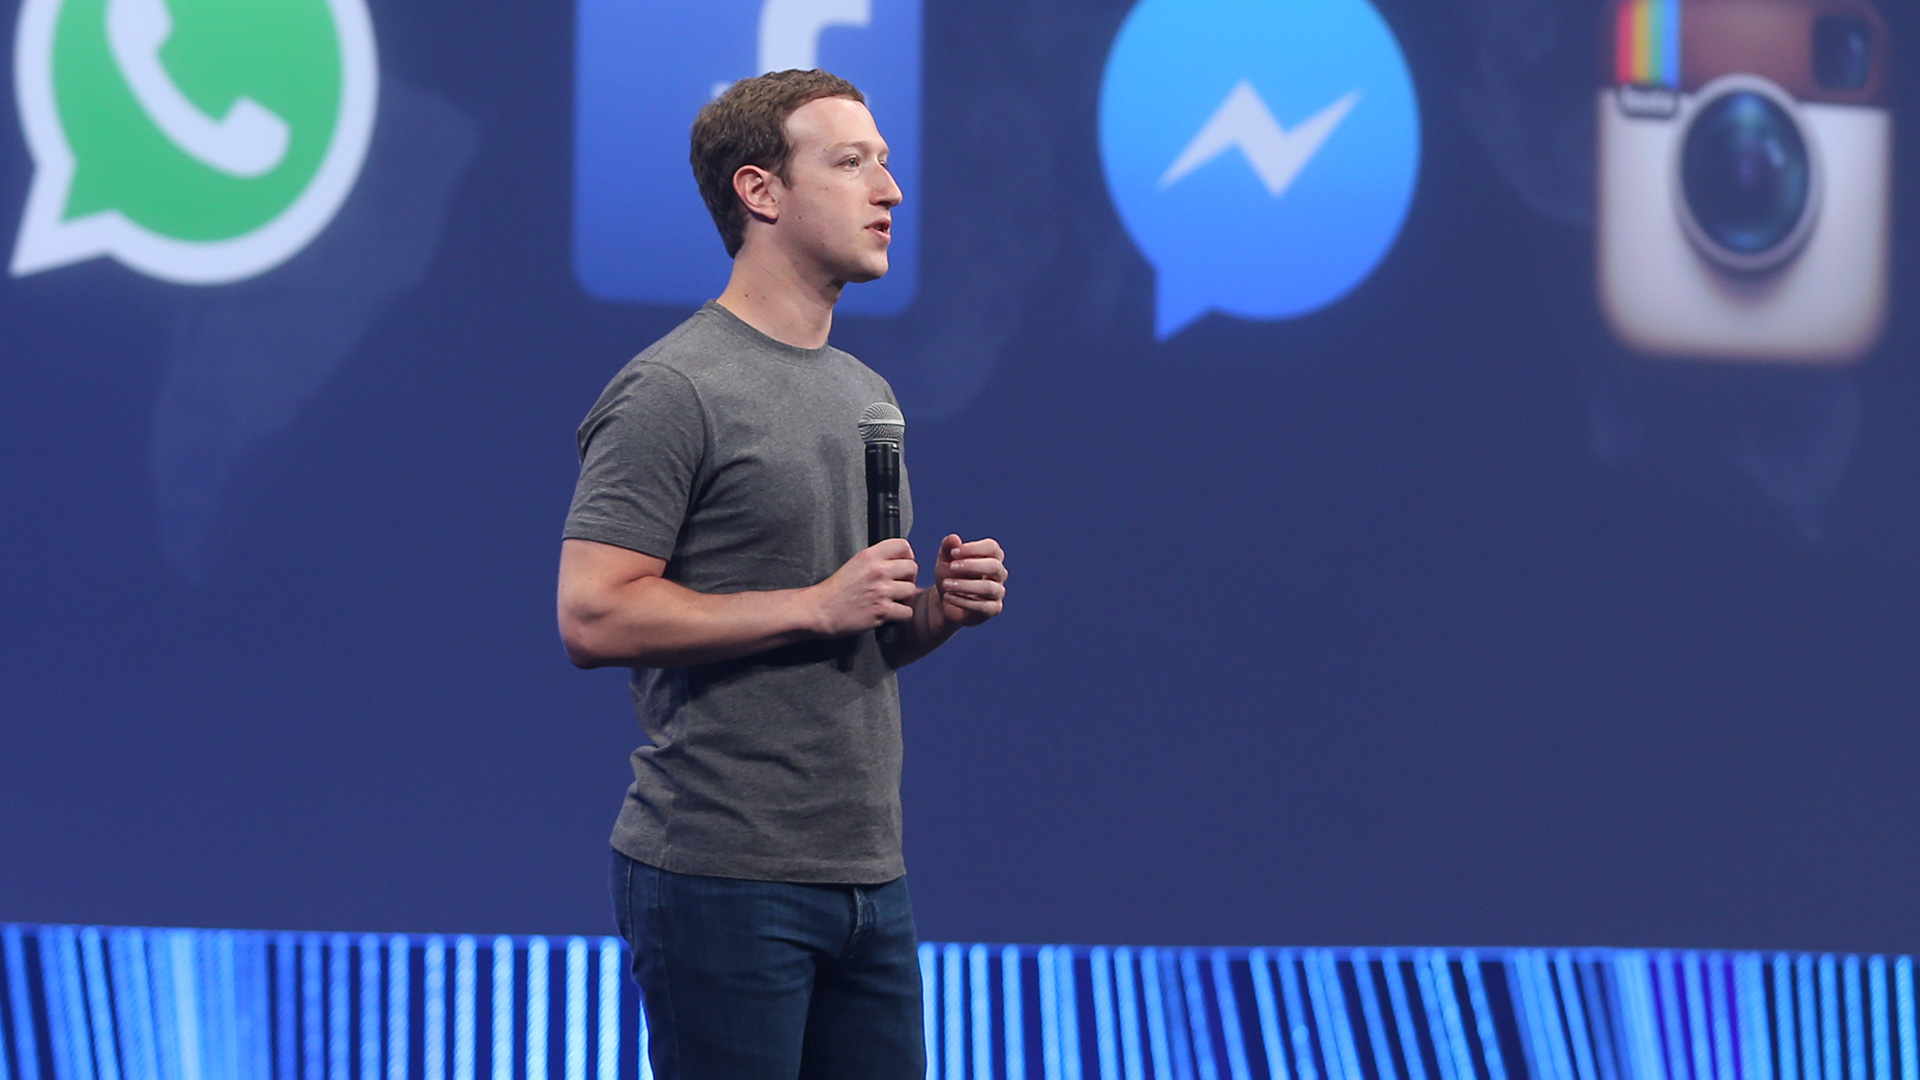 NYTimes Report Facebook plans to integrate WhatsApp Instagram 1920x1080